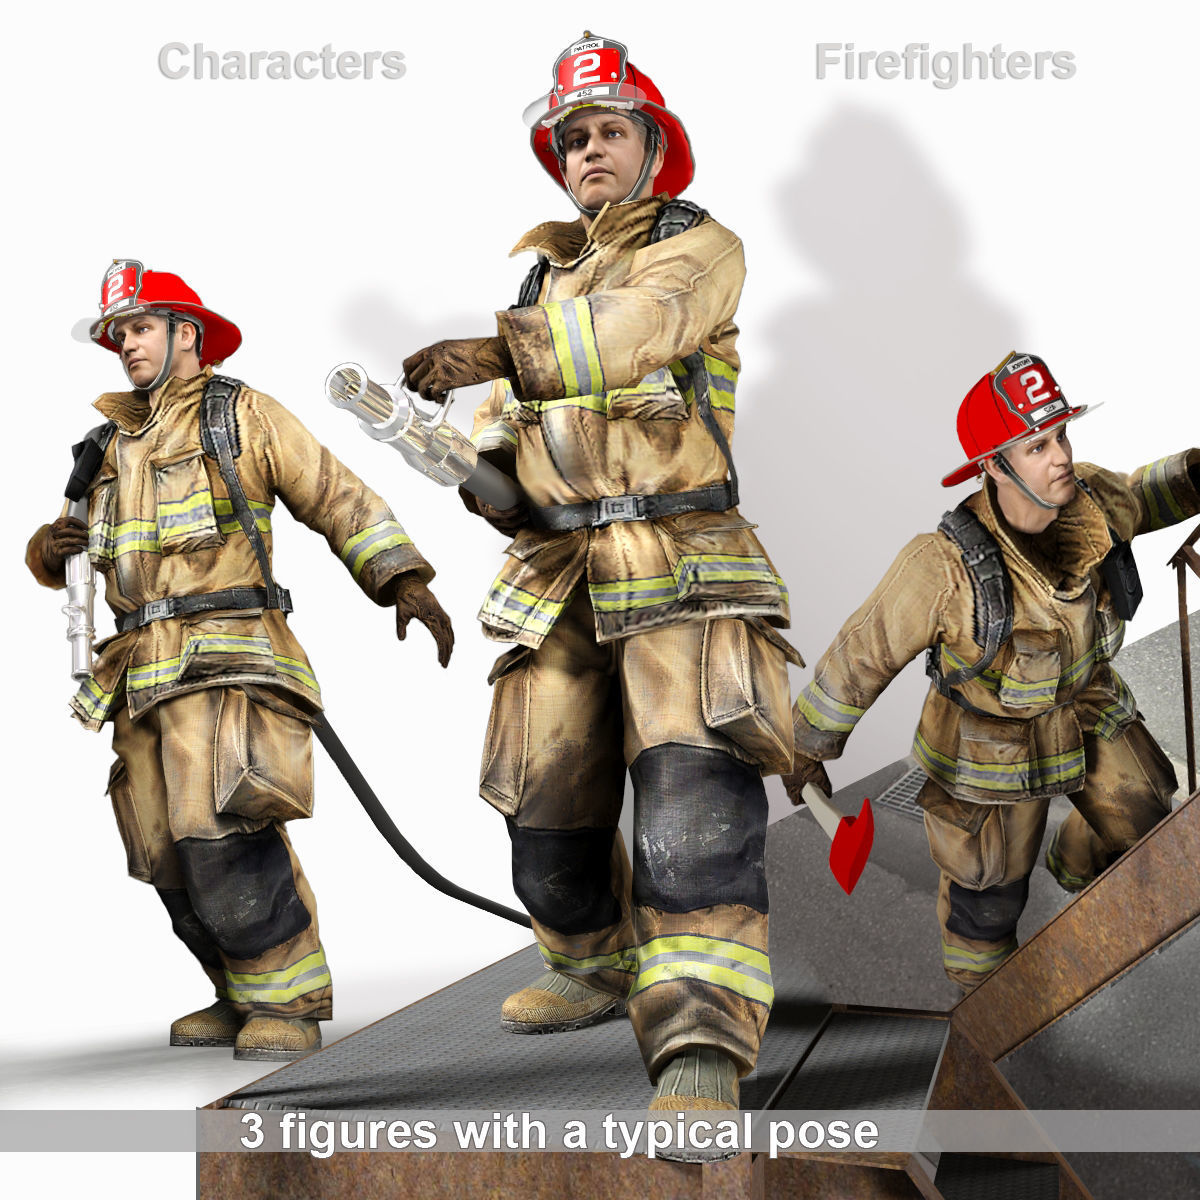 3D Firefighter characters